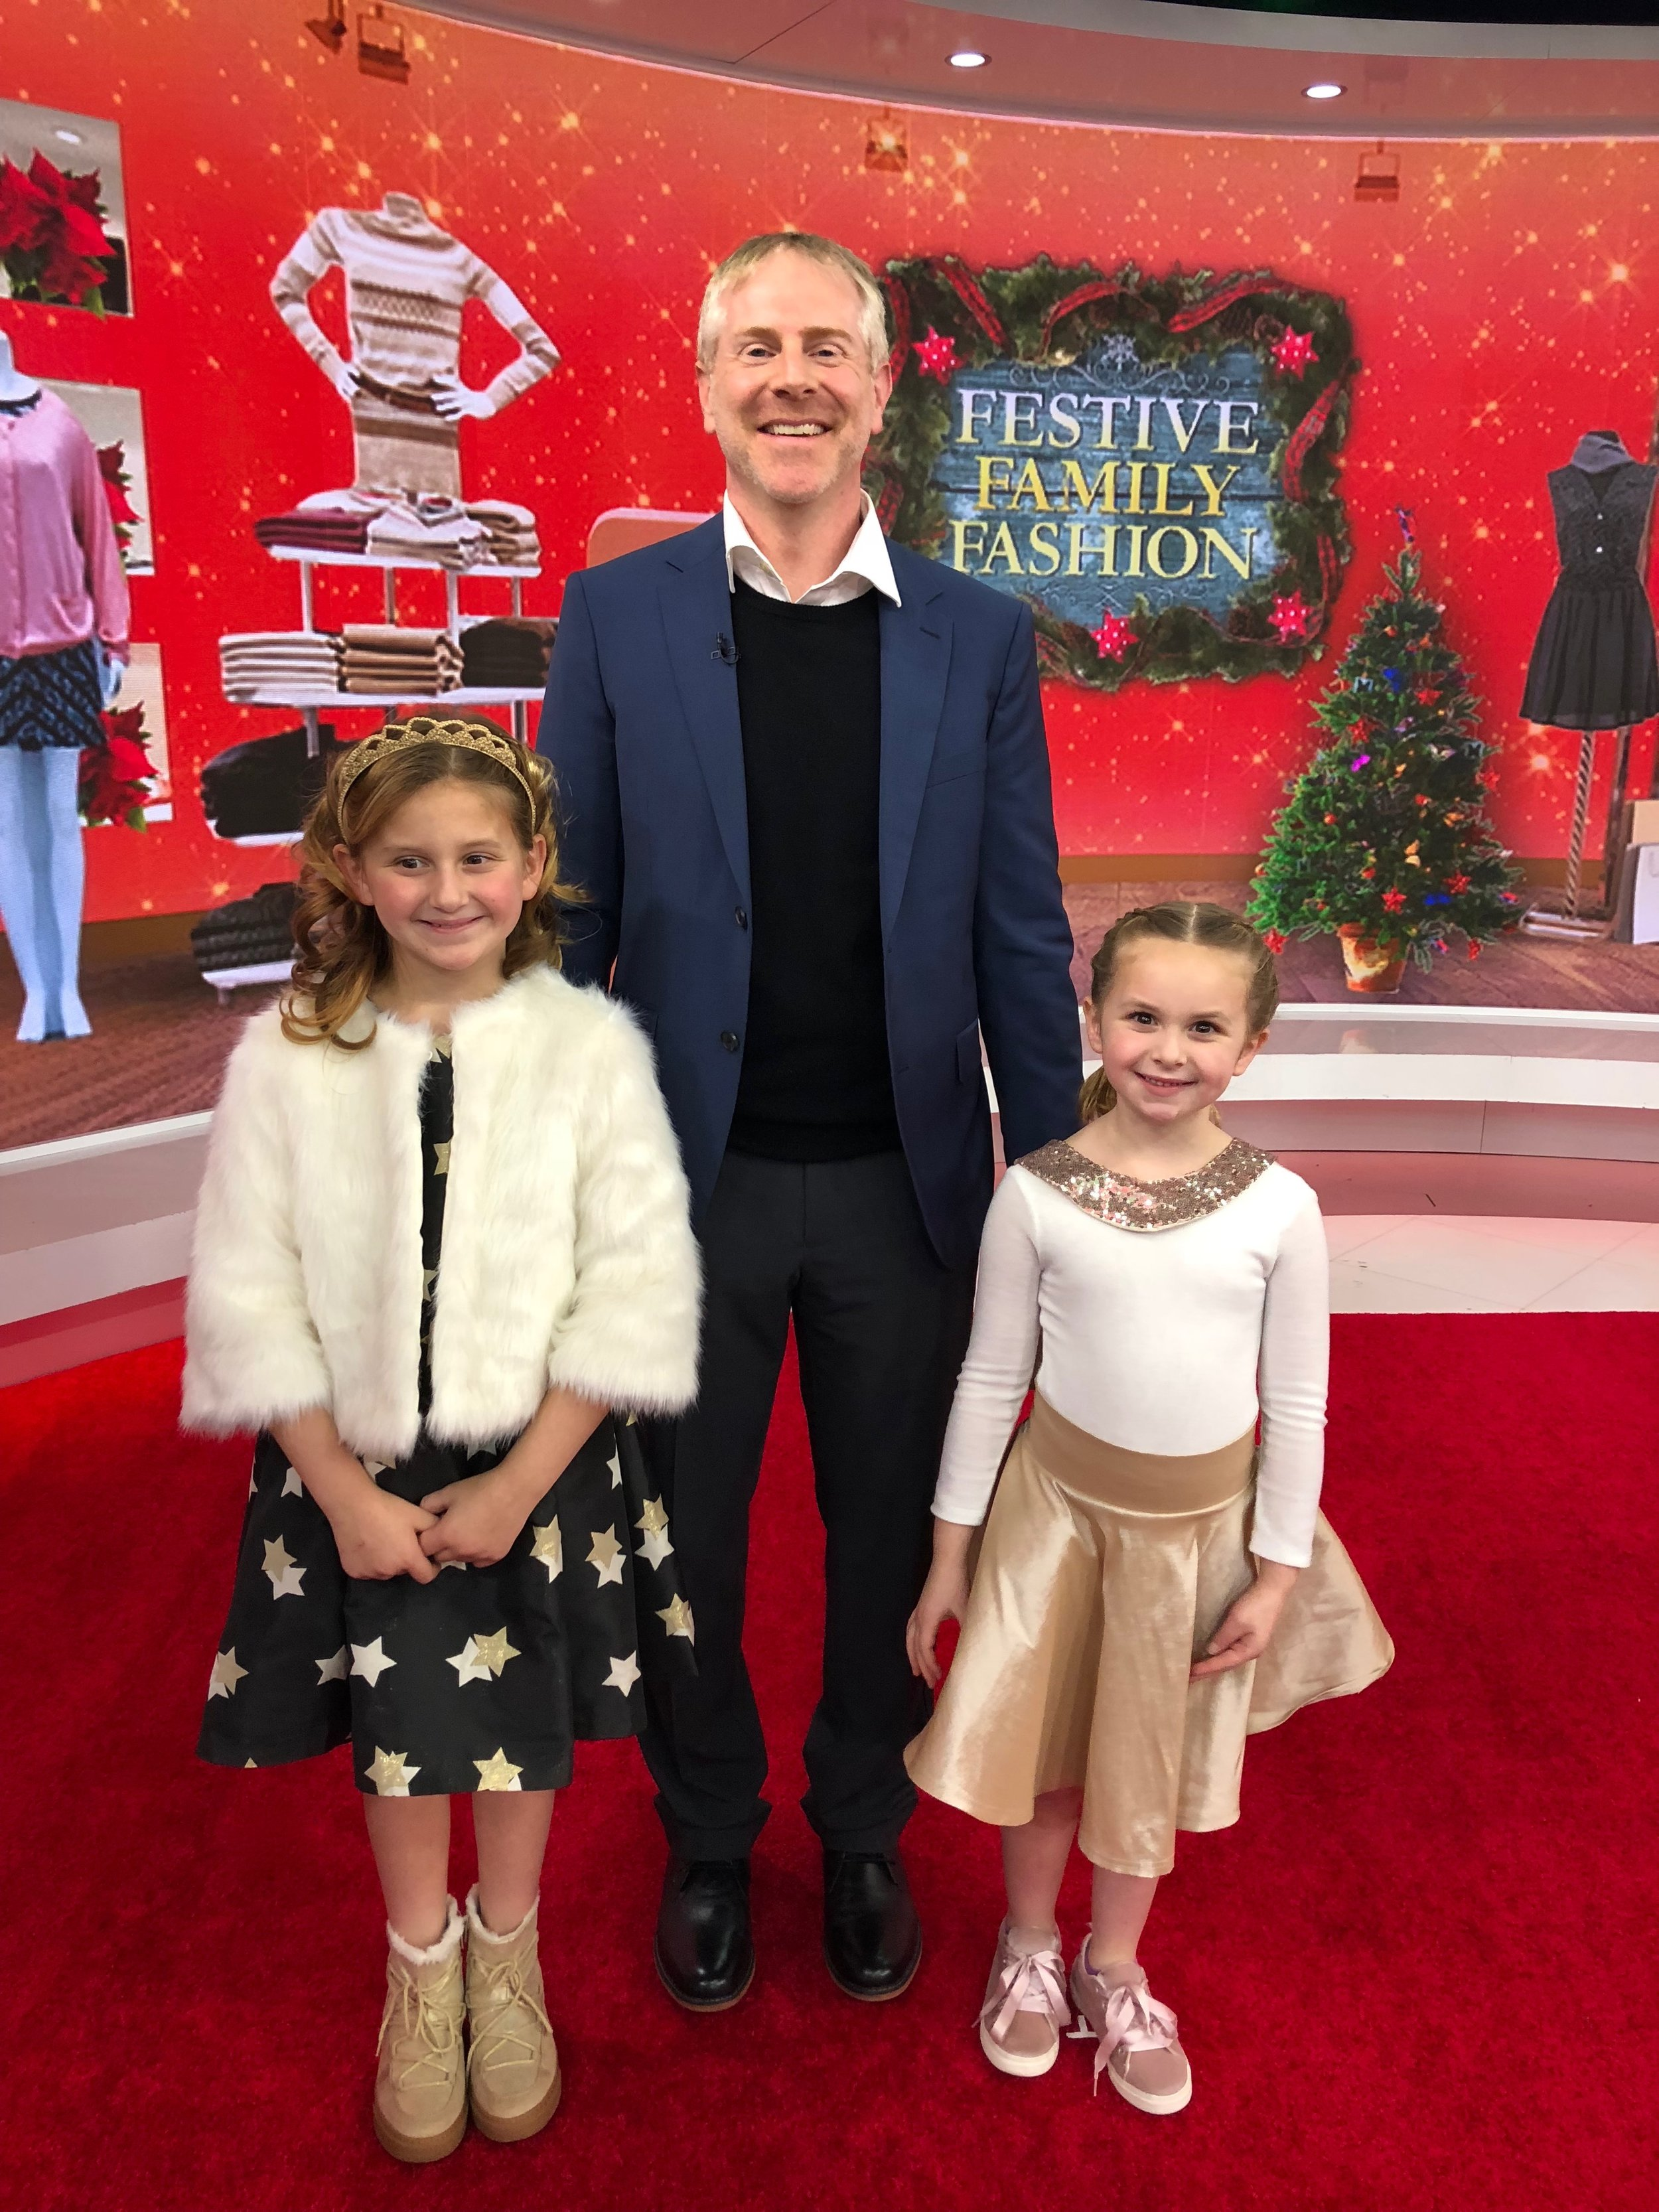 Golden Stars Holiday Family Fashions by fashion expert Amy E. Goodman